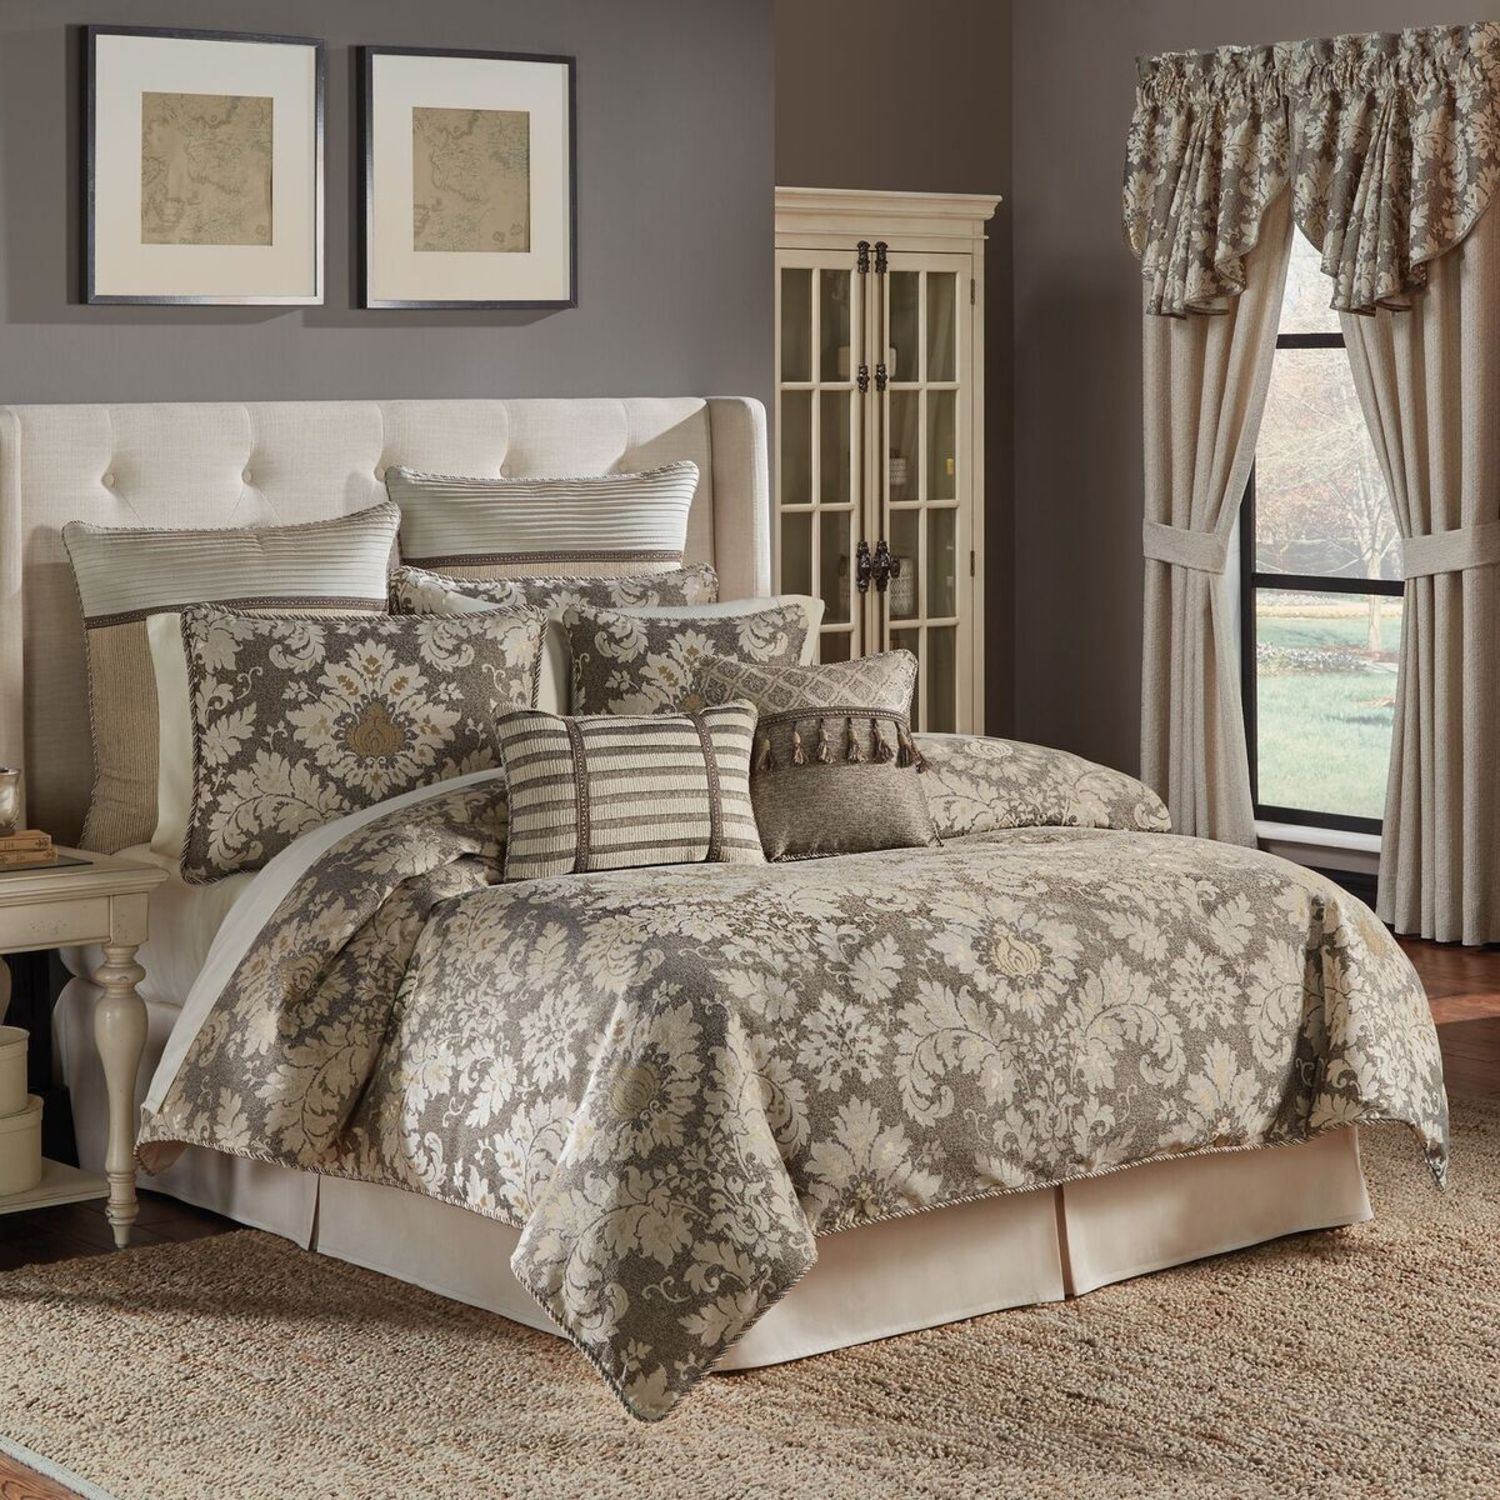 Nerissa by Croscill Home Fashions